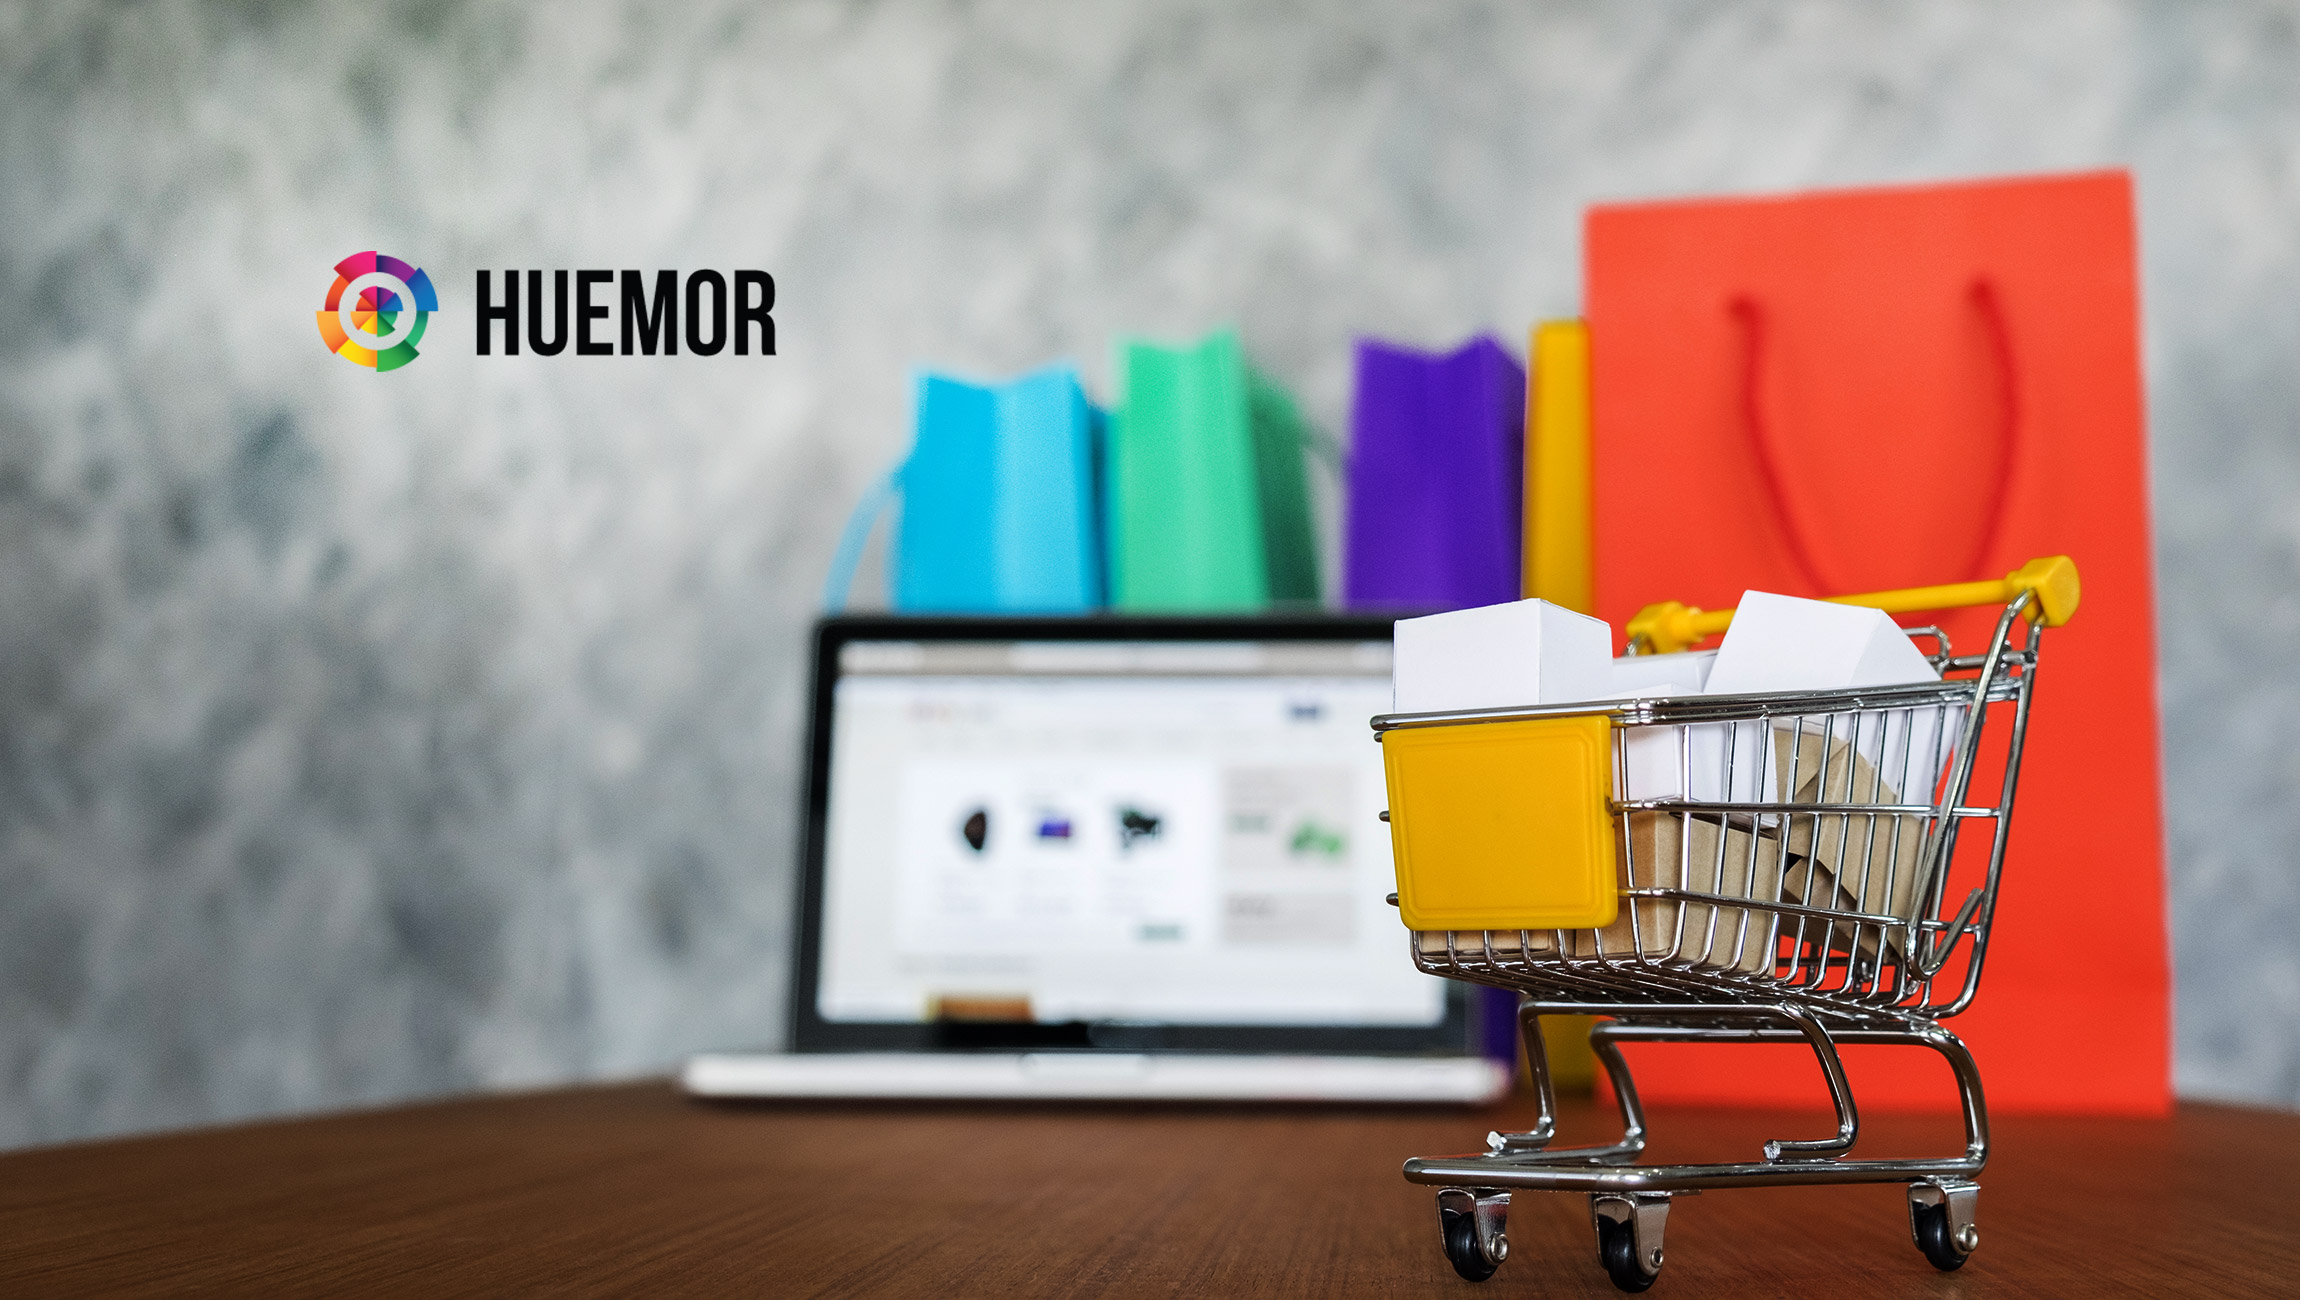 Web Development New York Agency, Huemor, Explains How To Prepare Your Ecommerce Site For The 2019 Holiday Season